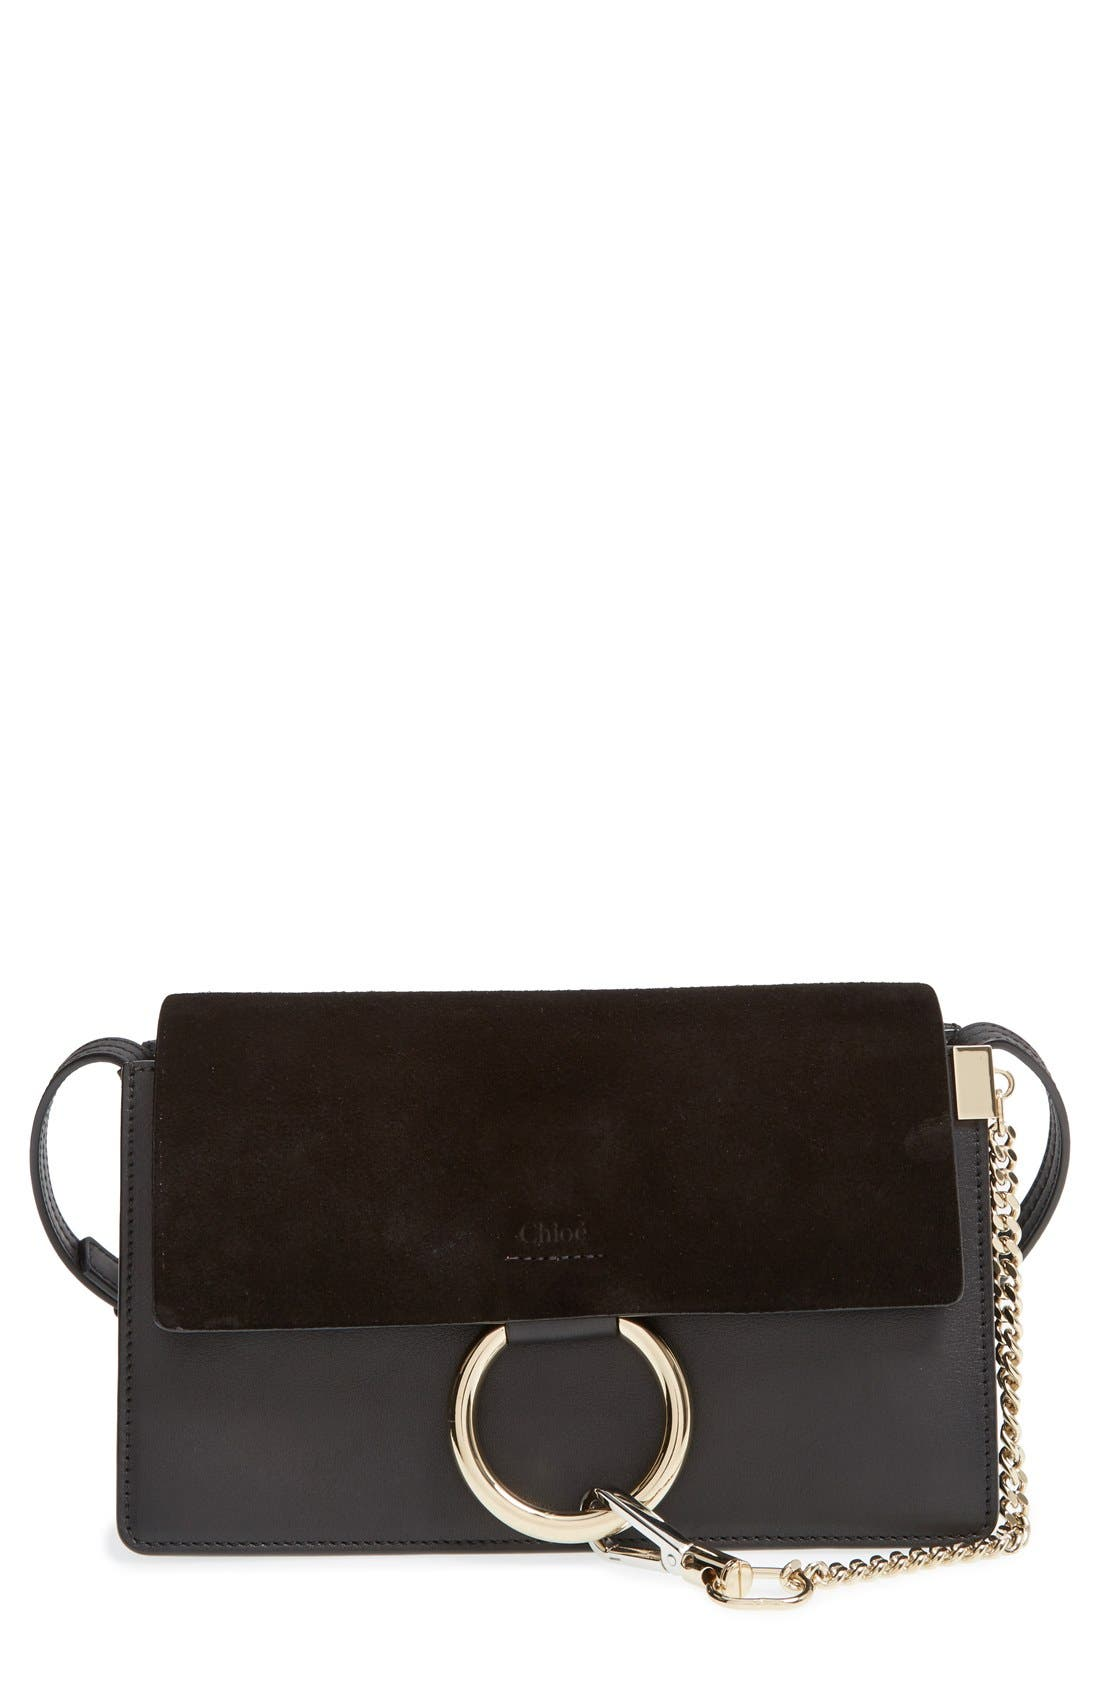 Alternate Image 1 Selected - Chloé Small Faye Leather Shoulder Bag